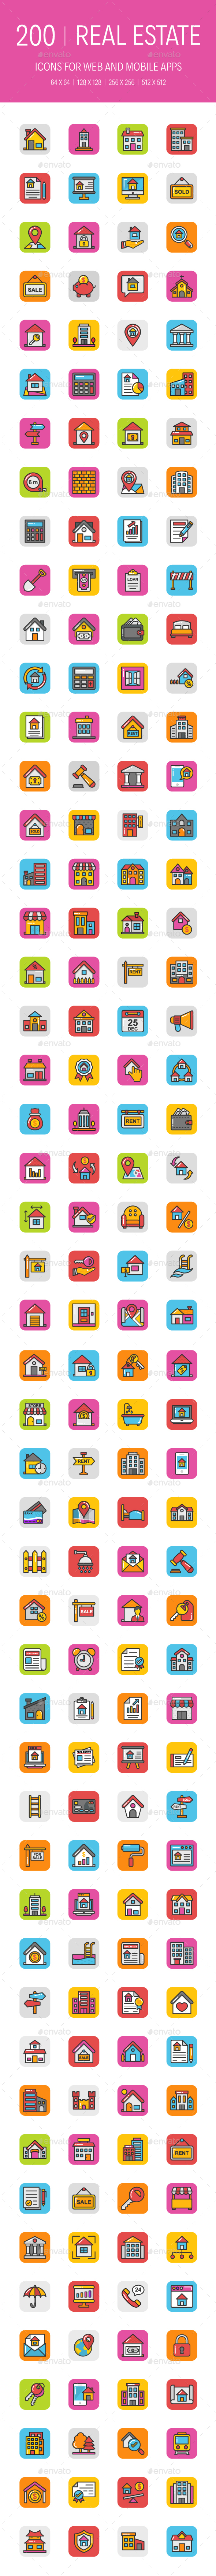 200 Real Estate Icons - Icons